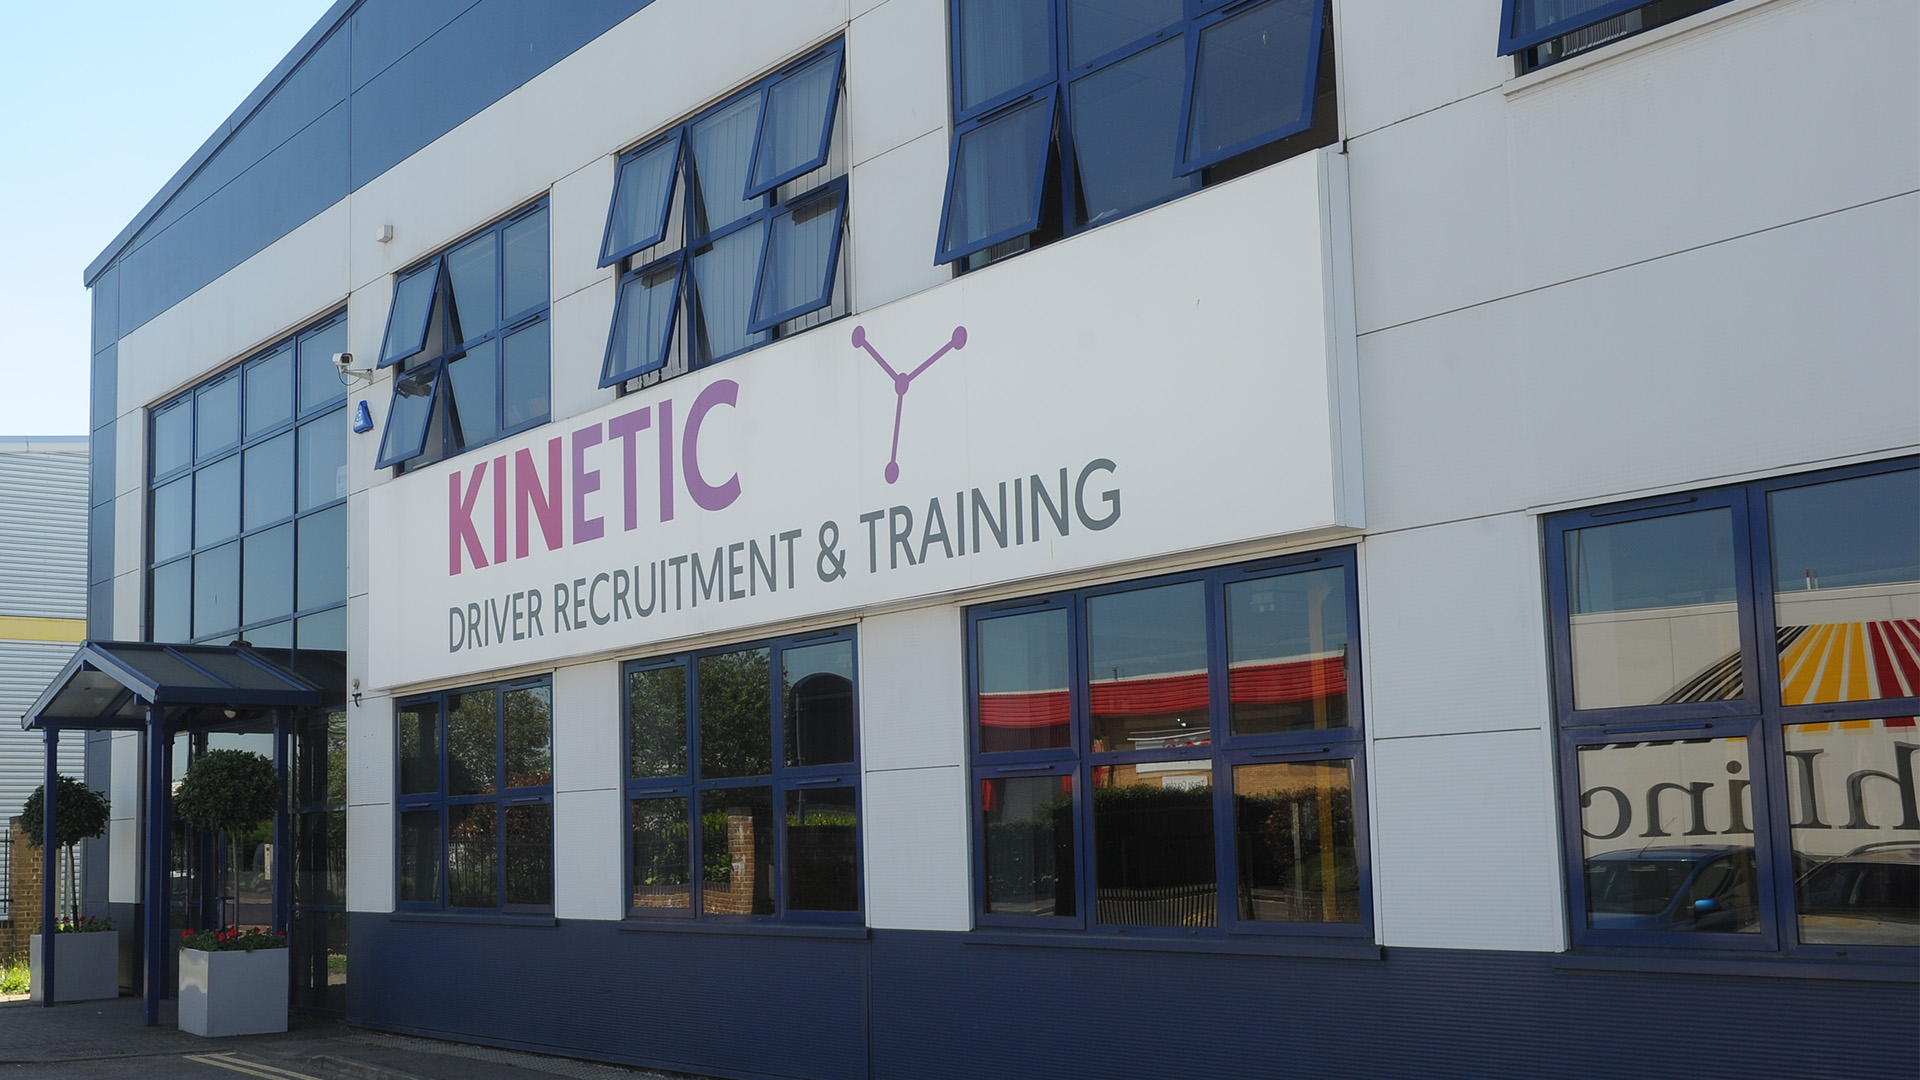 Kinetic Driver Recruitment trailors